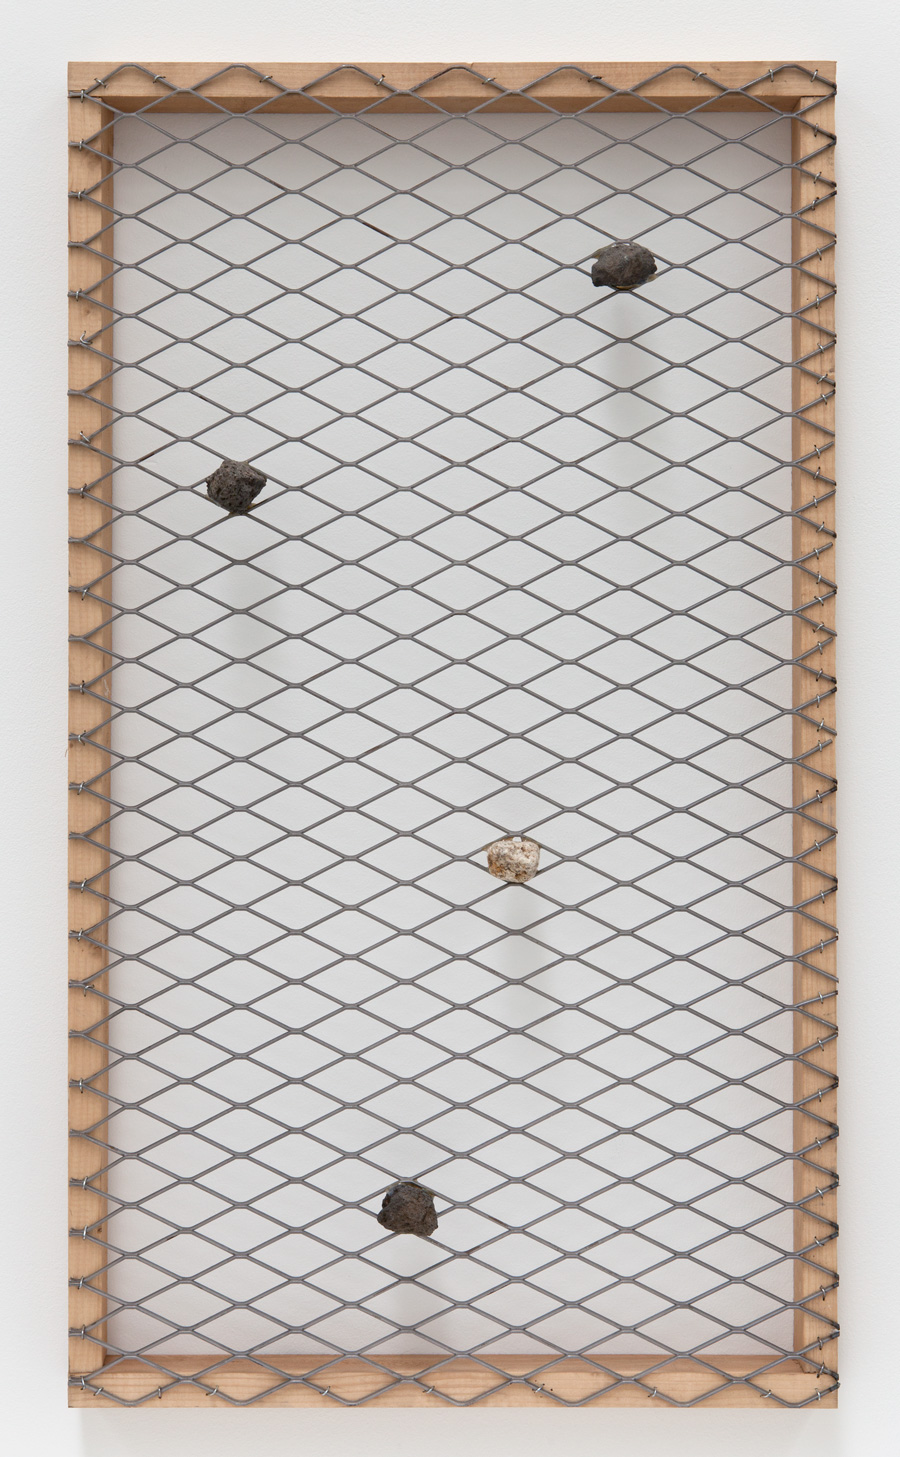 Hidden and Connected in Space , 2012 潜連空 ( Senrenkū ) Stone, wood, wire mesh 36 7/8 x 21 x 3 1/2 inches 93.5 x 53.5 x 9 cm